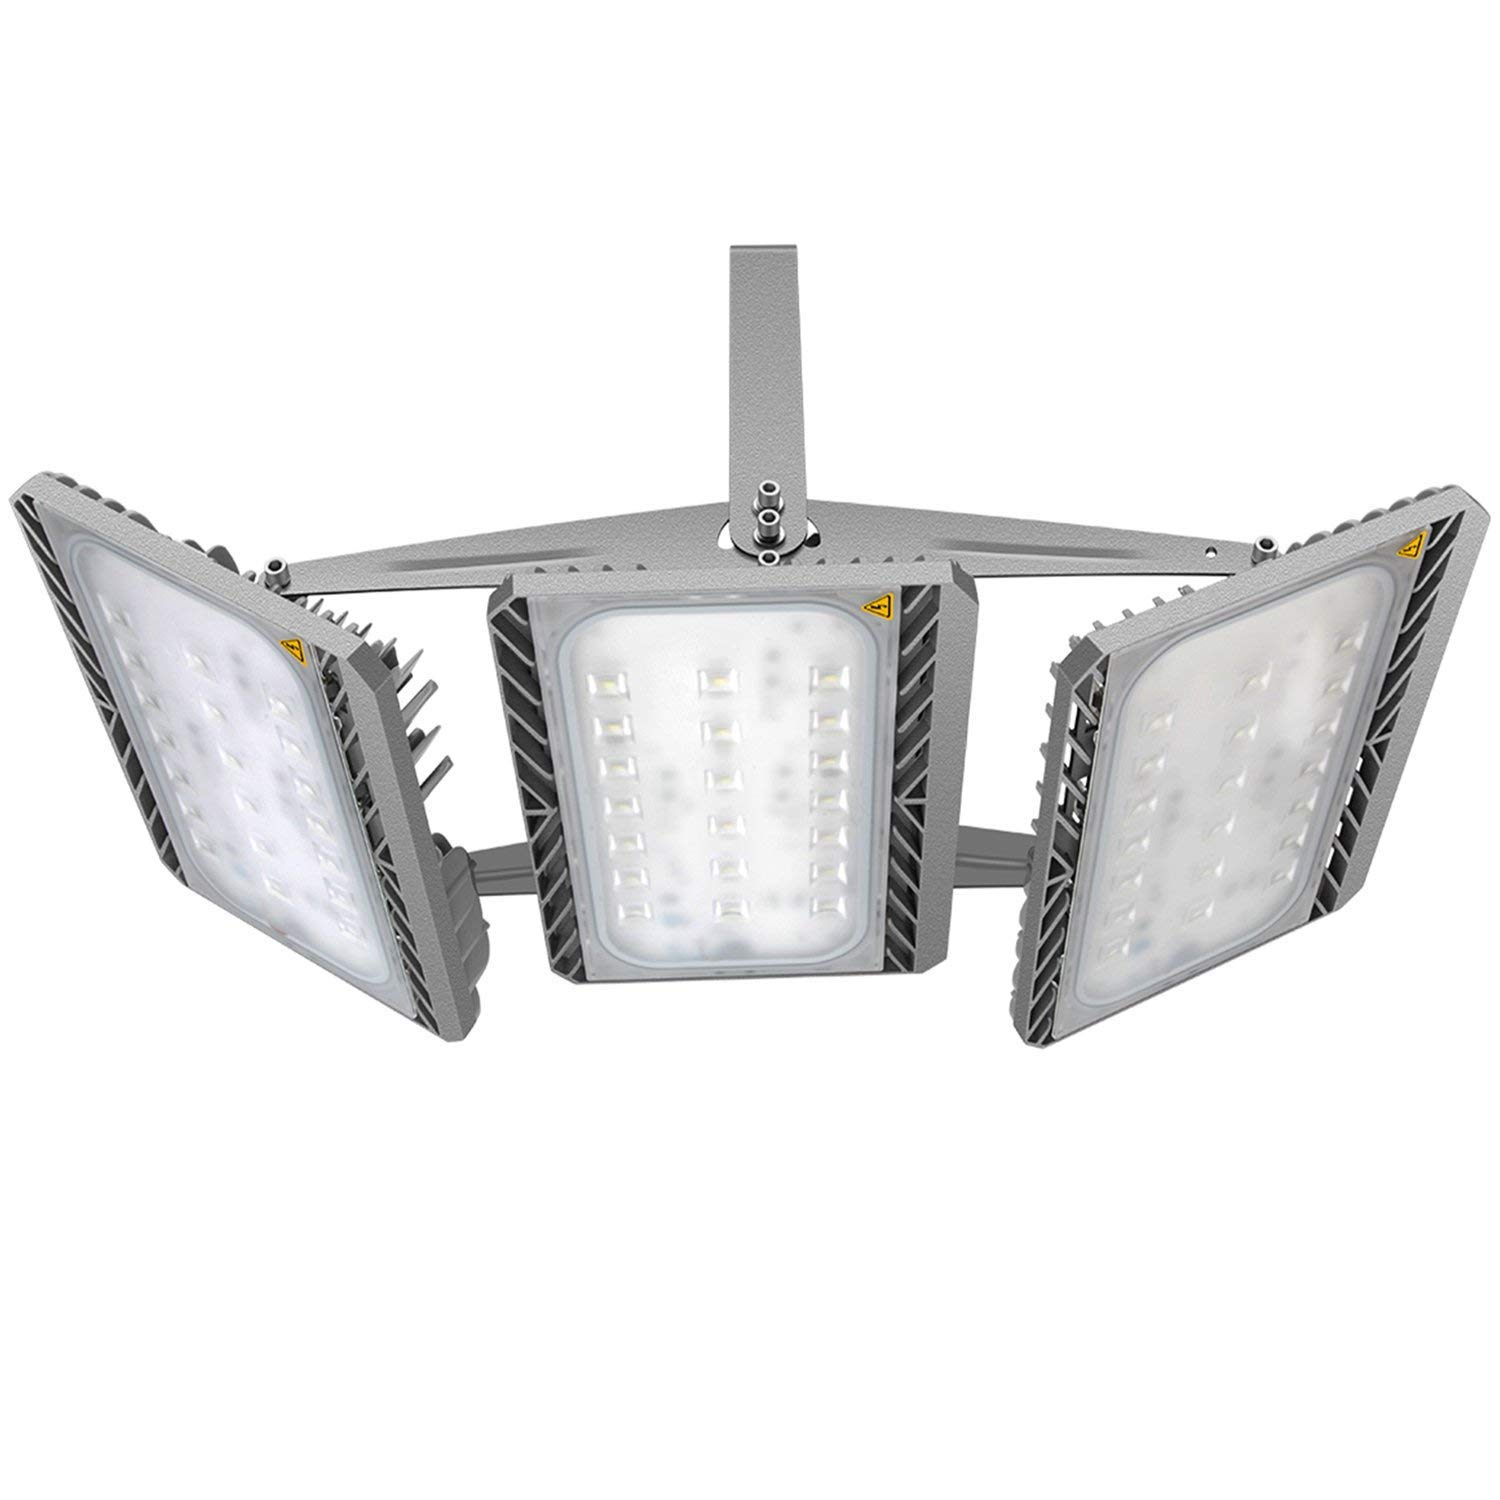 LED Flood Light Outdoor, STASUN 300W 27000lm LED Security Lights with Wider Lighting Area, 3000K Warm White, Built with CREE LED Source, Waterproof, Great for Street, Garage, Parking Lot by STASUN